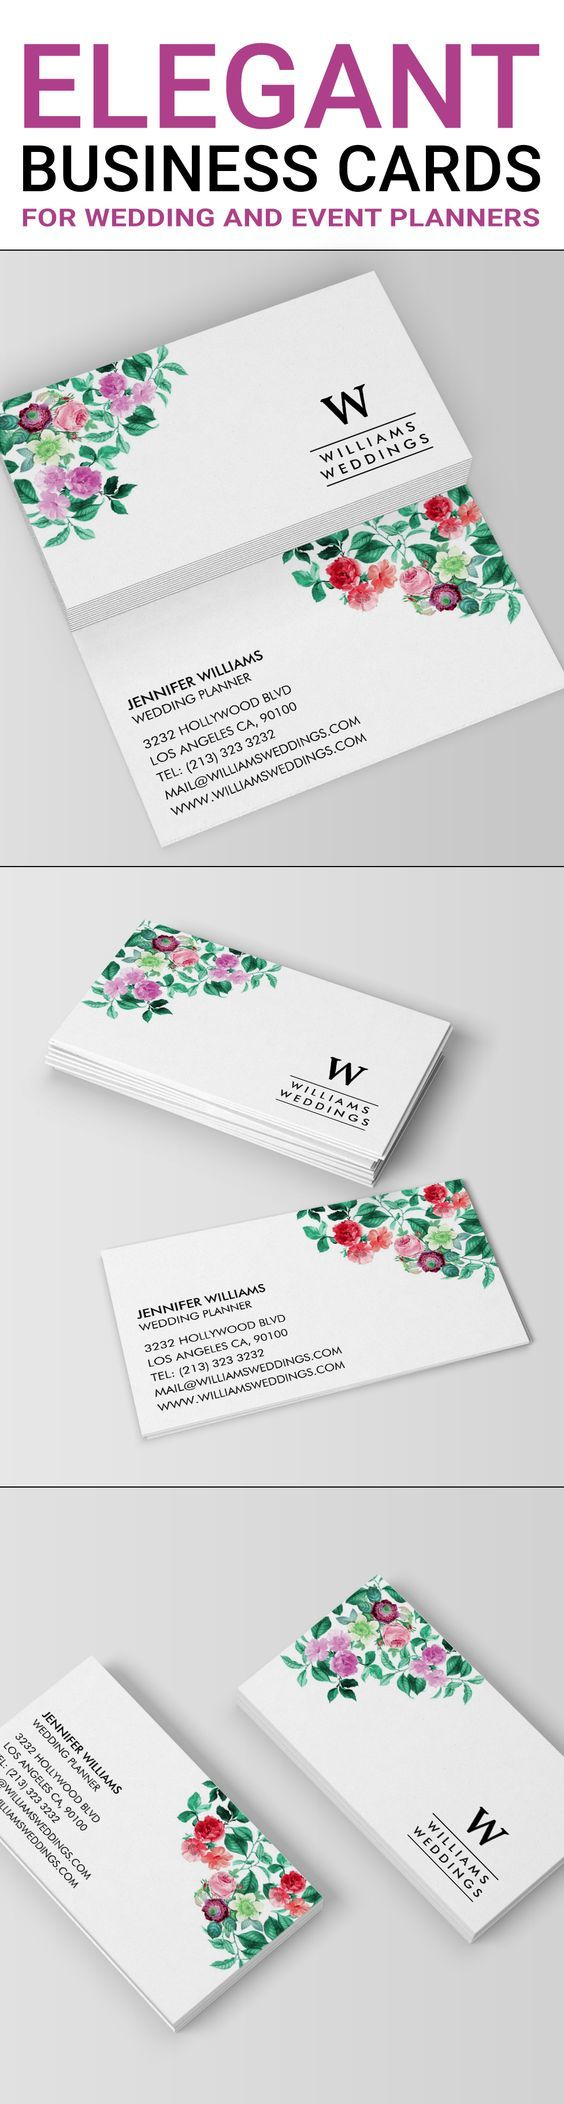 29 best Unique Business Cards images on Pinterest | Unique business ...